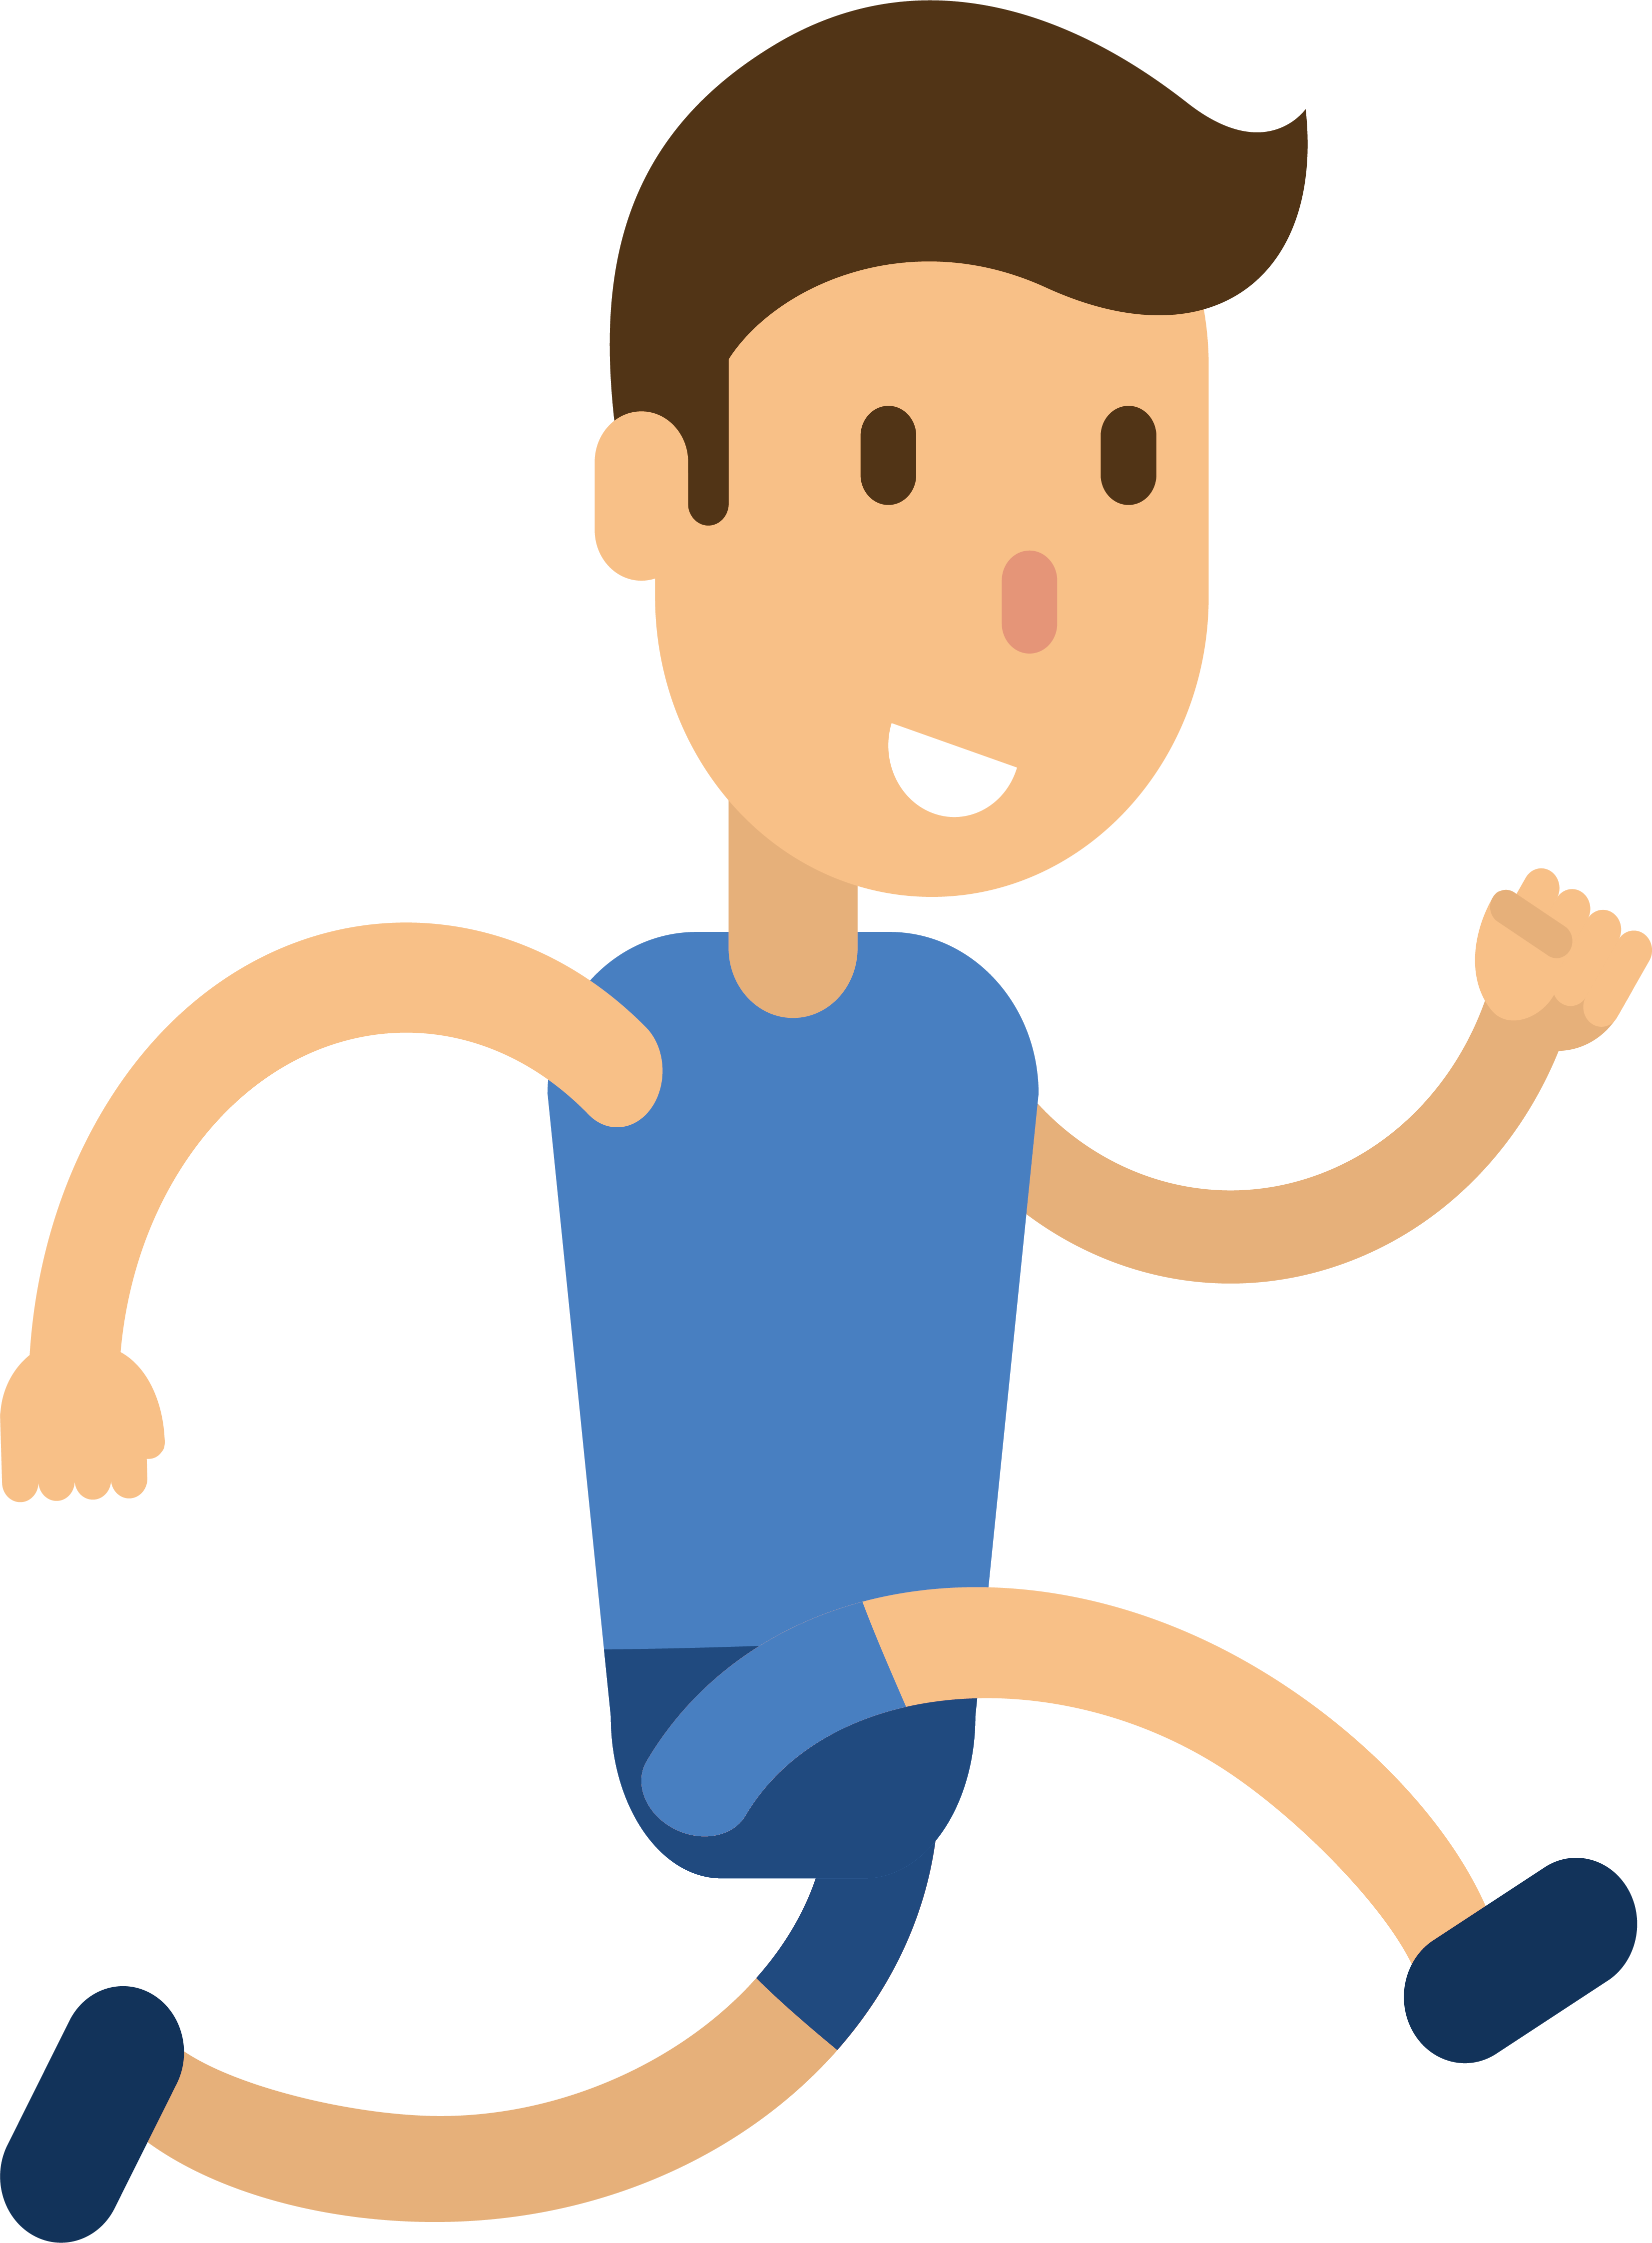 Drawing clipart healthy child. Running athlete illustration boy